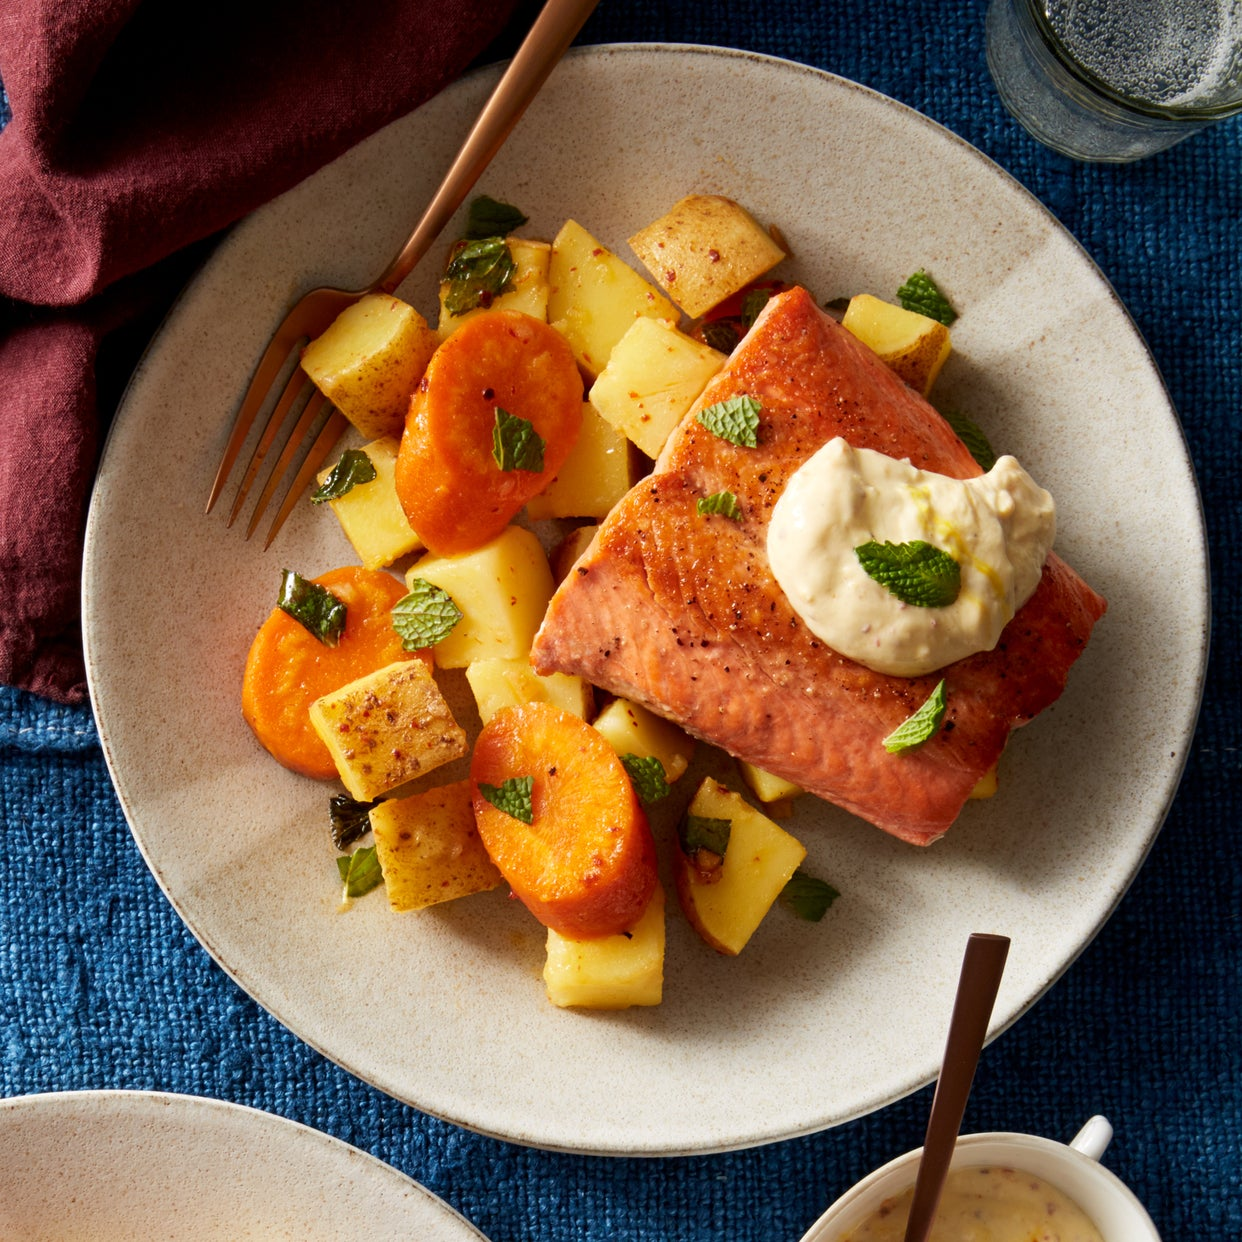 Salmon & Honey-Glazed Carrots with Lemon-Saffron Yogurt Sauce